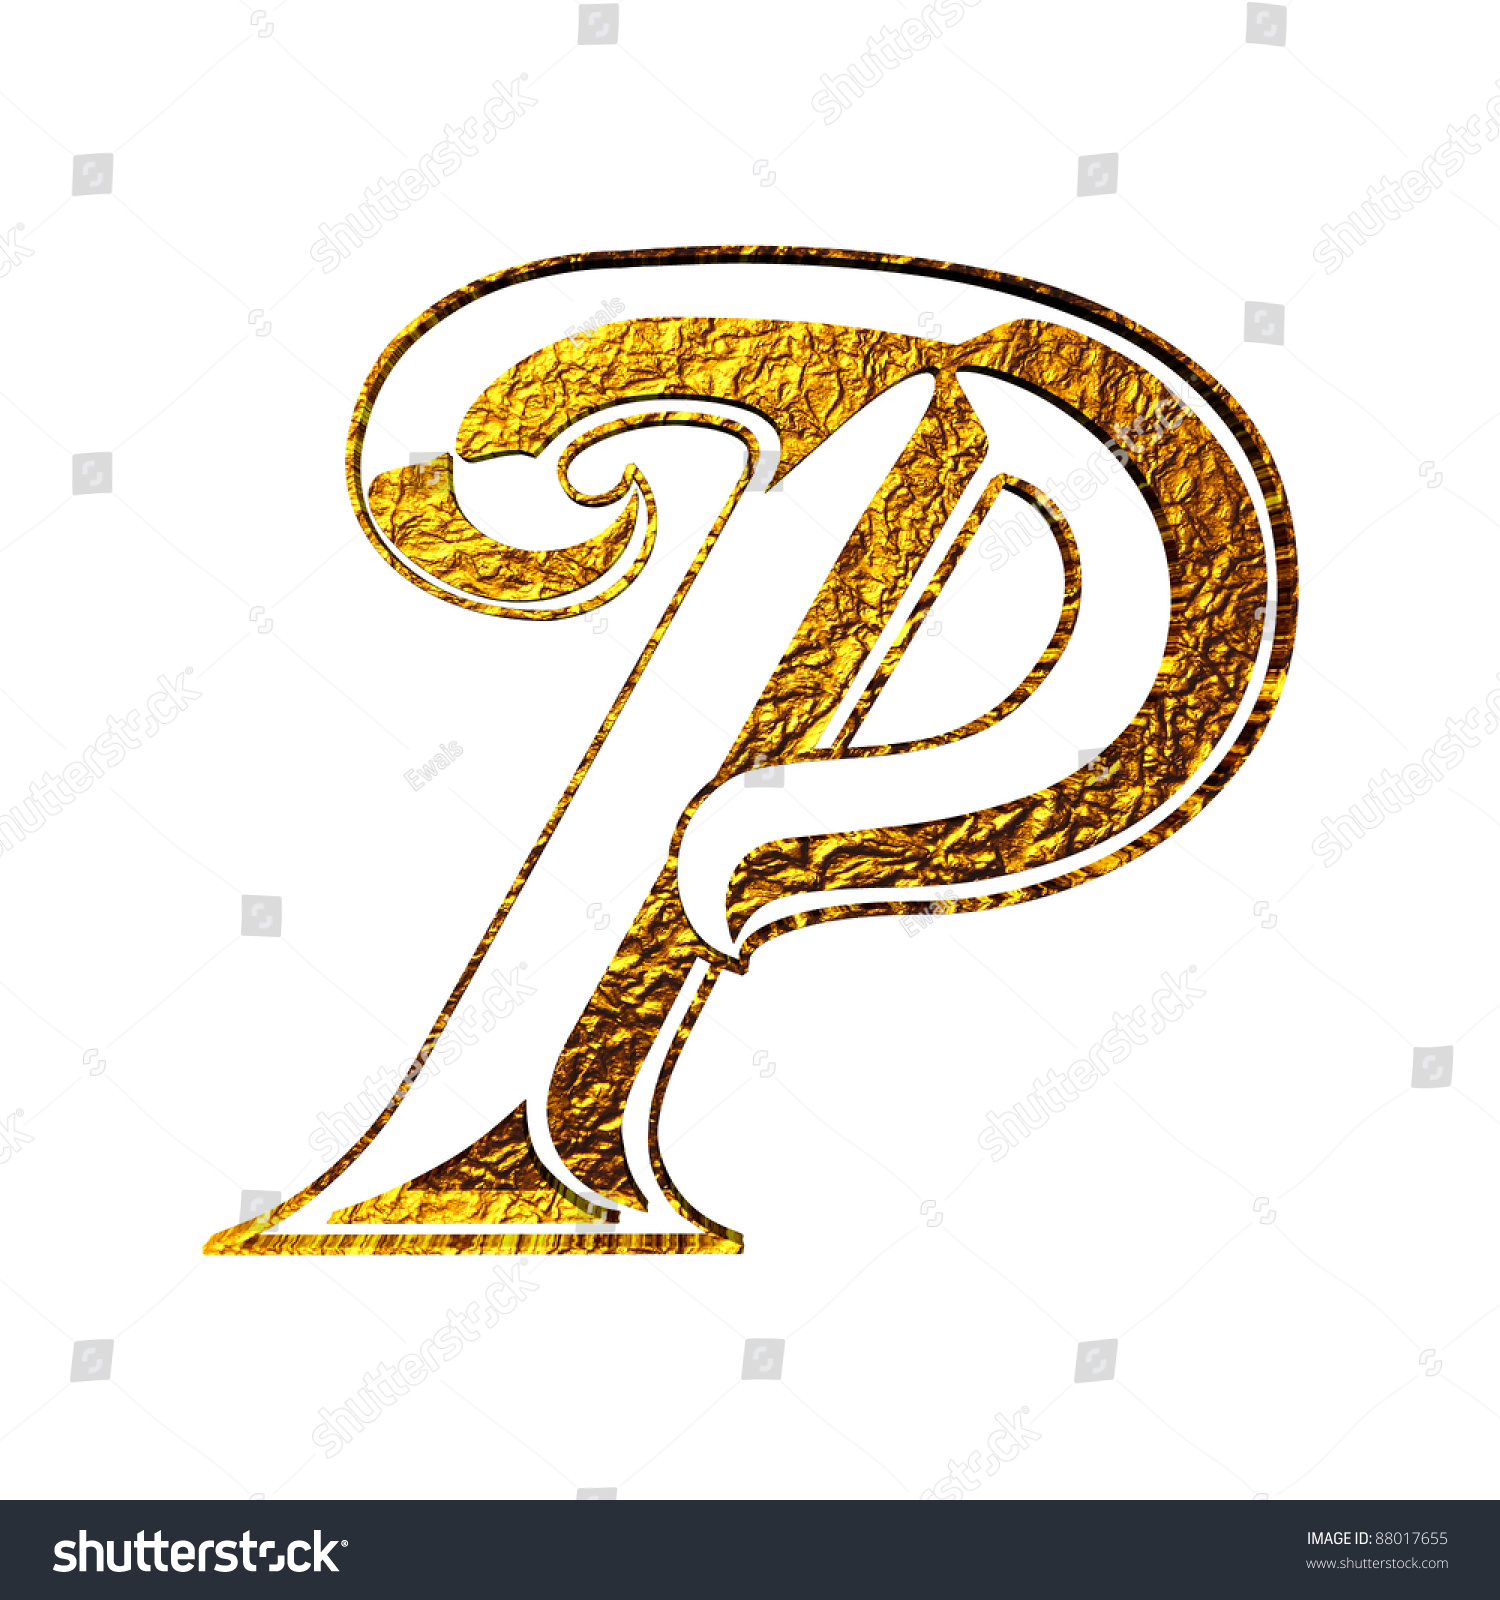 Vintage initial gold alphabet symbol p isolated on white stock photo